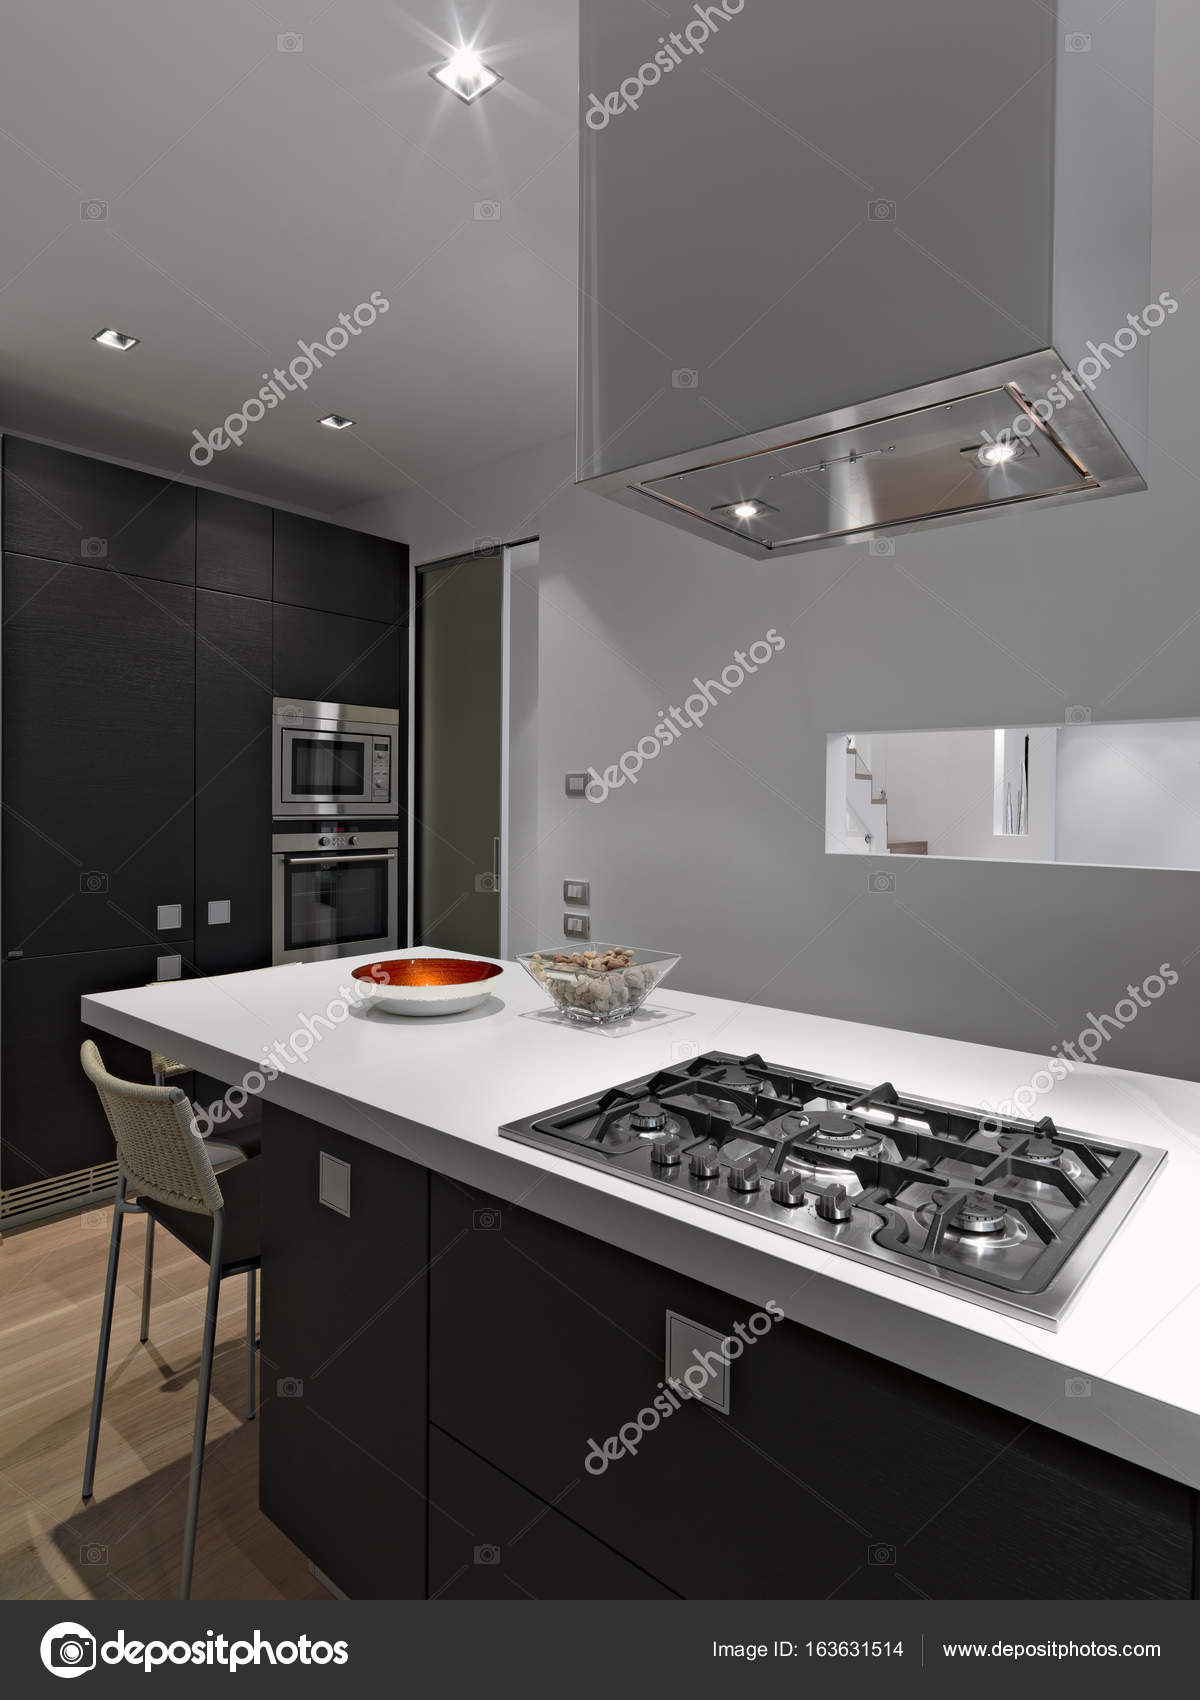 kitchen island with stove kohler faucets home depot 室内拍摄的现代厨房里前景厨房岛 图库照片 c aaphotograph 163631514